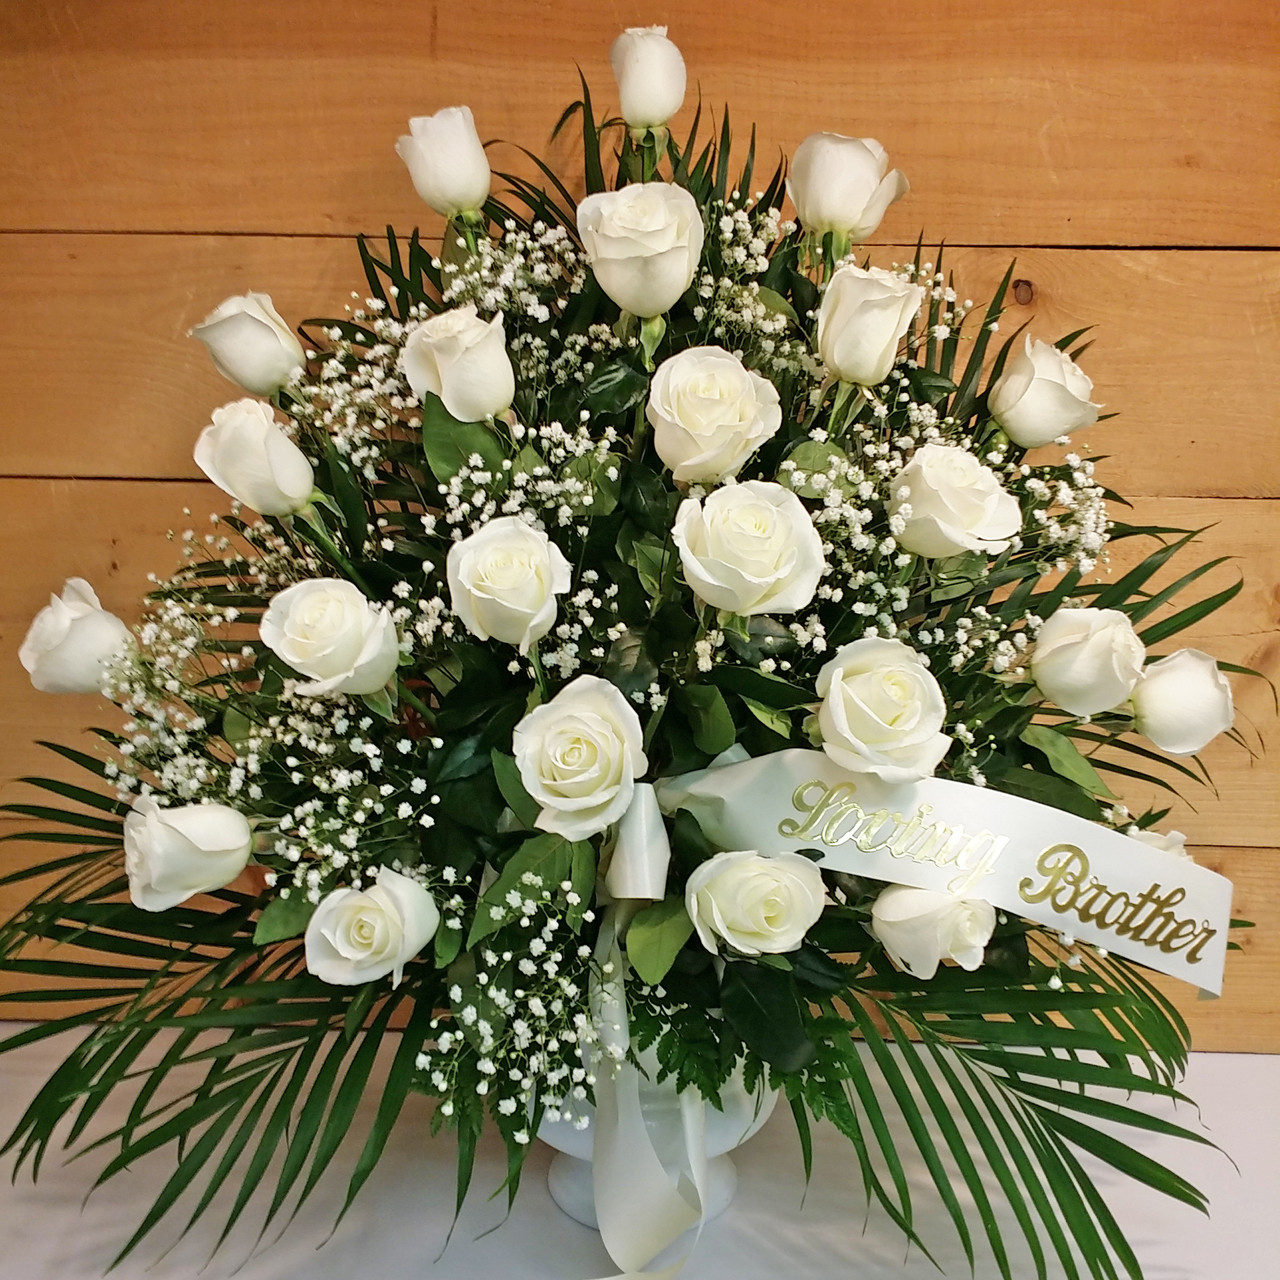 24 White Rose Sympathy Arrangement Savilles Country Florist